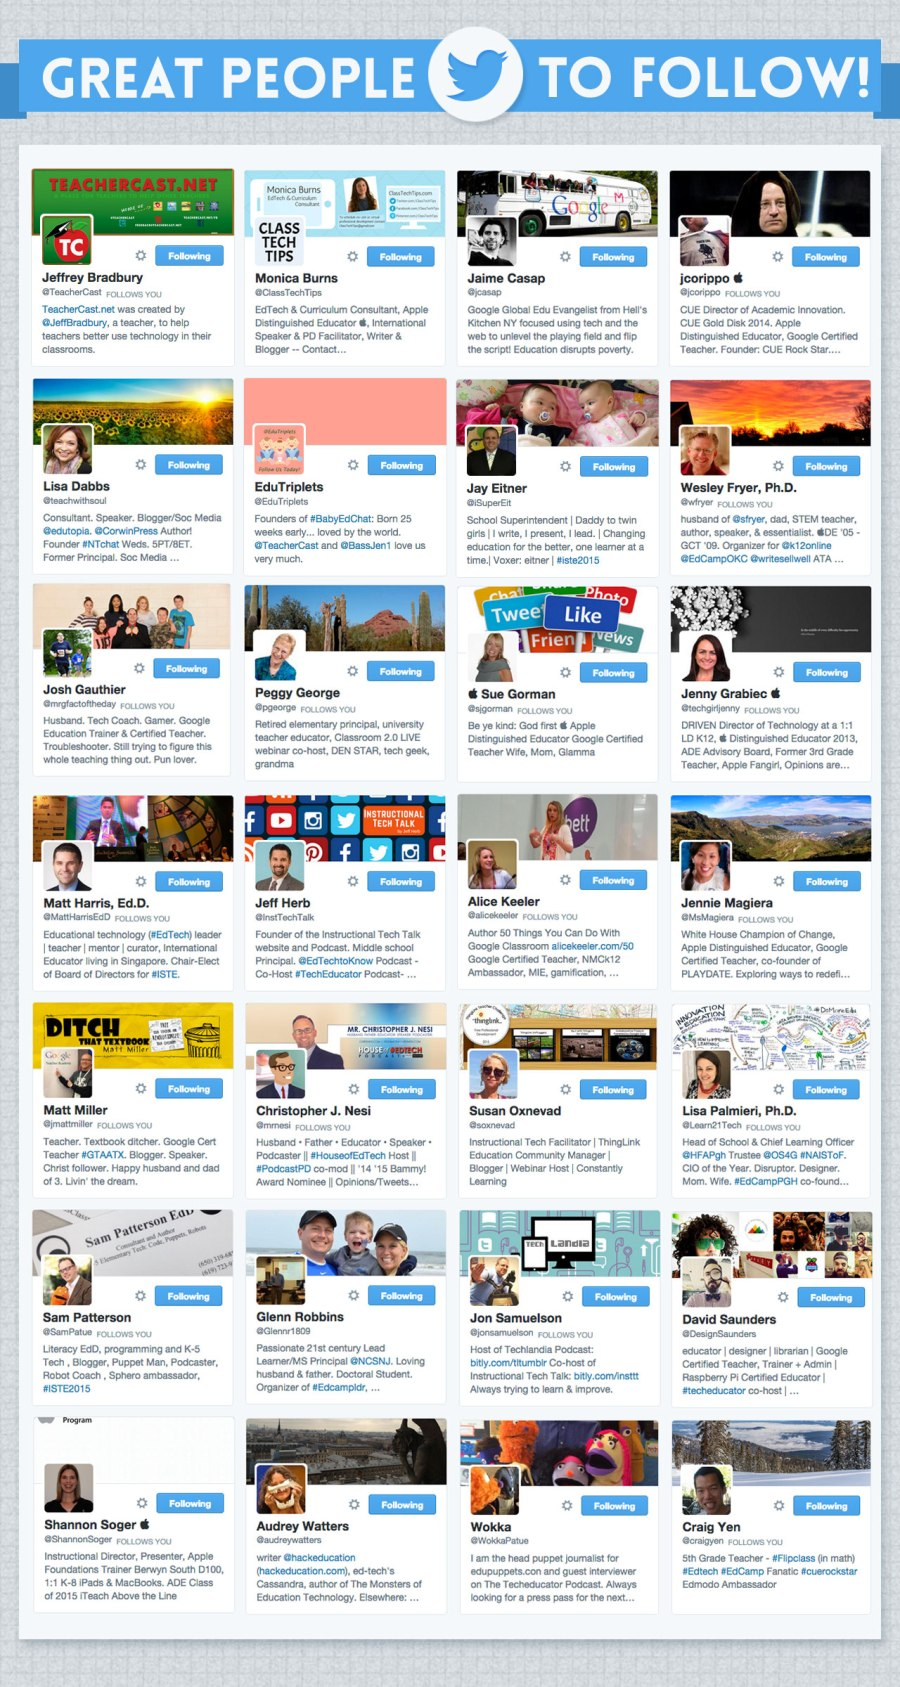 "From June 28-July 1, 2015, more than 20,000 educators will be learning, networking, and partying at the ISTE conference in Philadelphia Pa.  With all of the great events happening this weekend, the question always comes up…. ""Who Should I be Following?""  The TechEducator Podcast has just the answer and we have compiled 28 AMAZING teachers, administrators, and educational leaders for you to meet and scratch off your EduCrush Bingo card.  When you meet one of them… please take a moment and share that you learned about them from TeacherCast!"